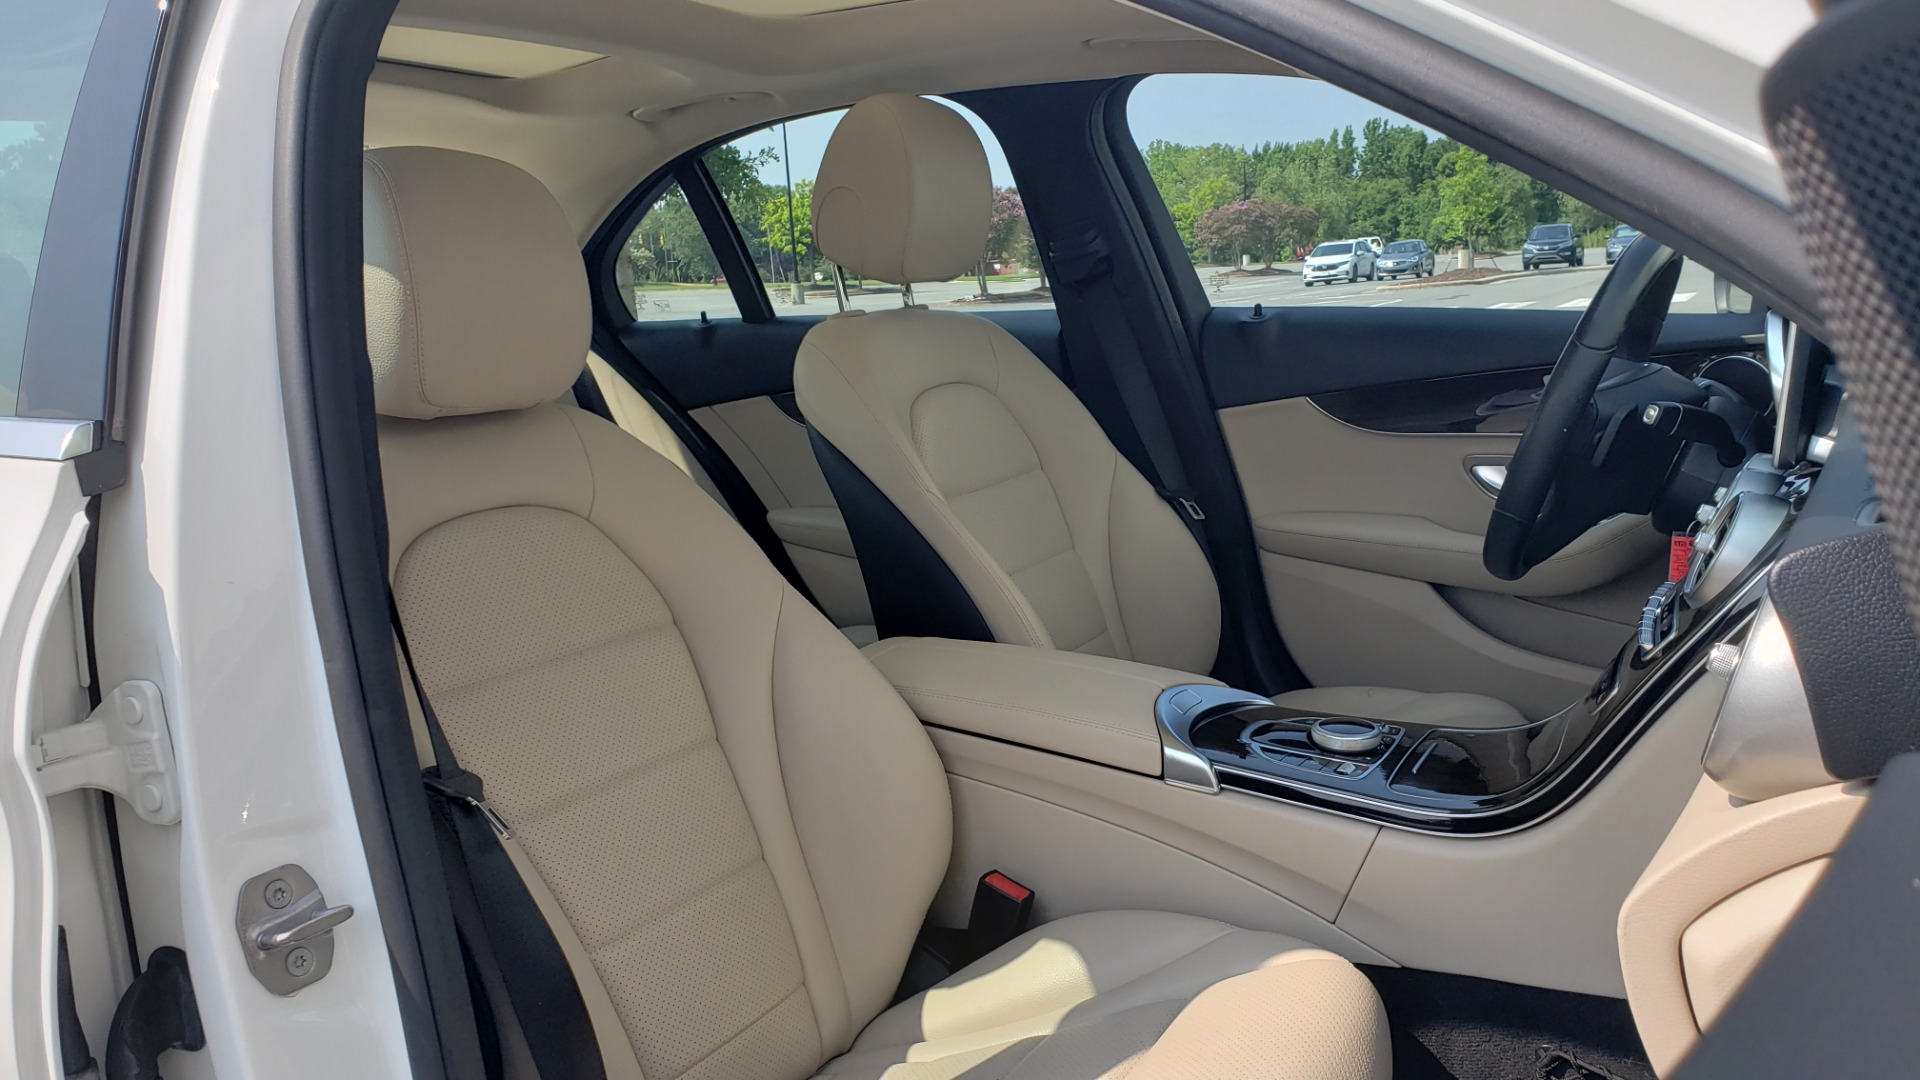 Used 2018 Mercedes-Benz C-CLASS C 300 PREMIUM / KEYLESS-GO / APPLE / PANO-ROOF / REARVIEW for sale $28,295 at Formula Imports in Charlotte NC 28227 62